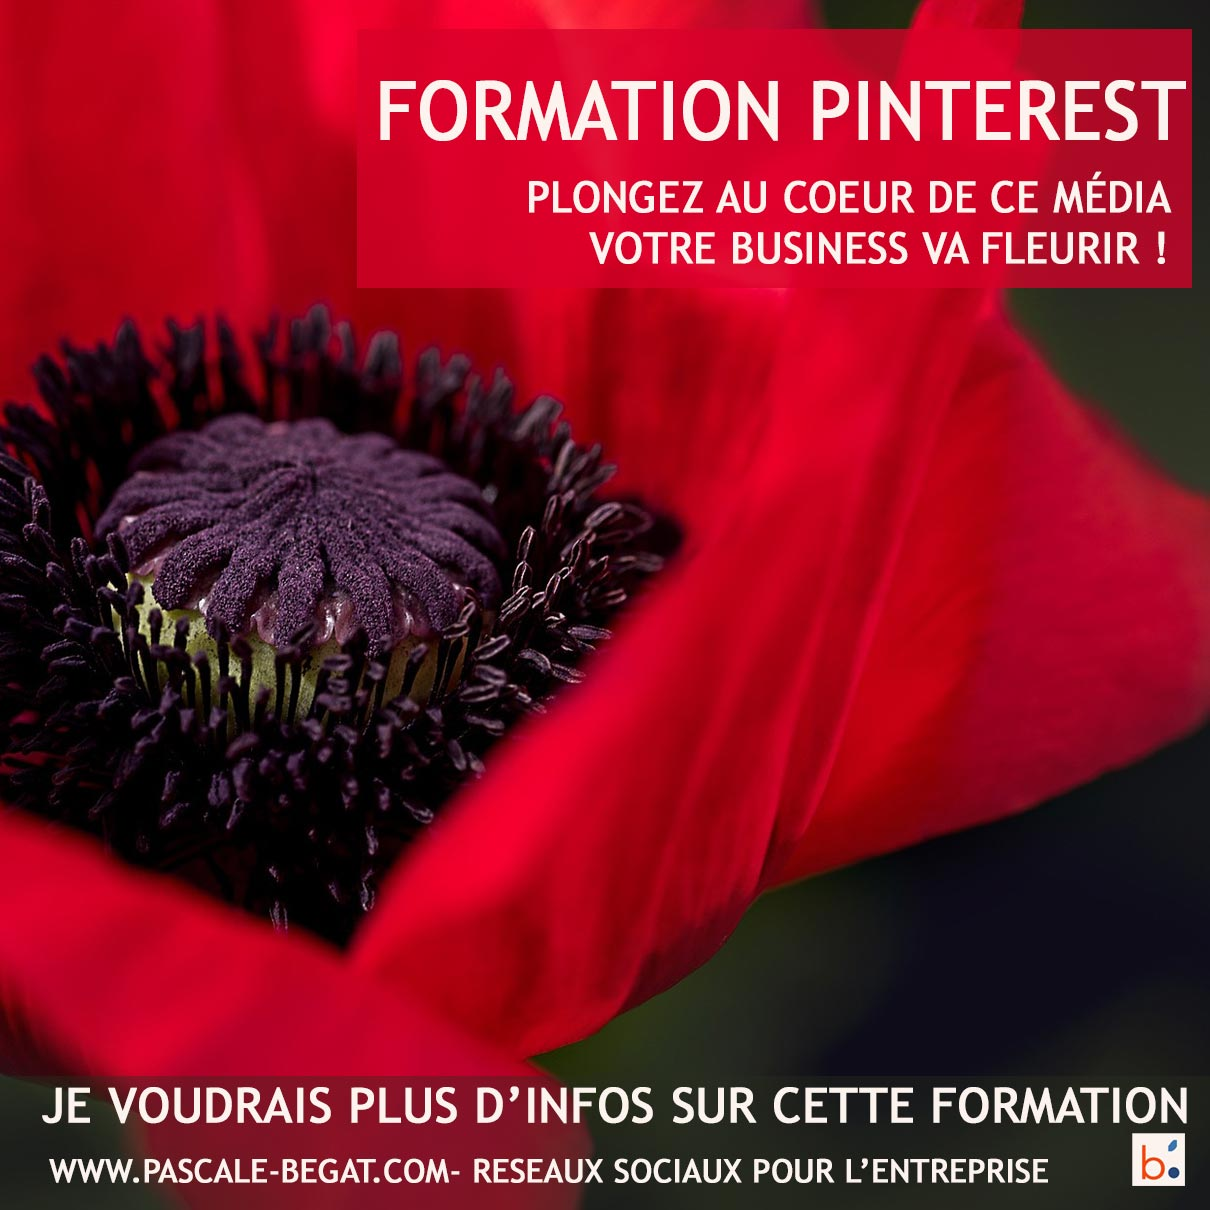 Formation Pinterest